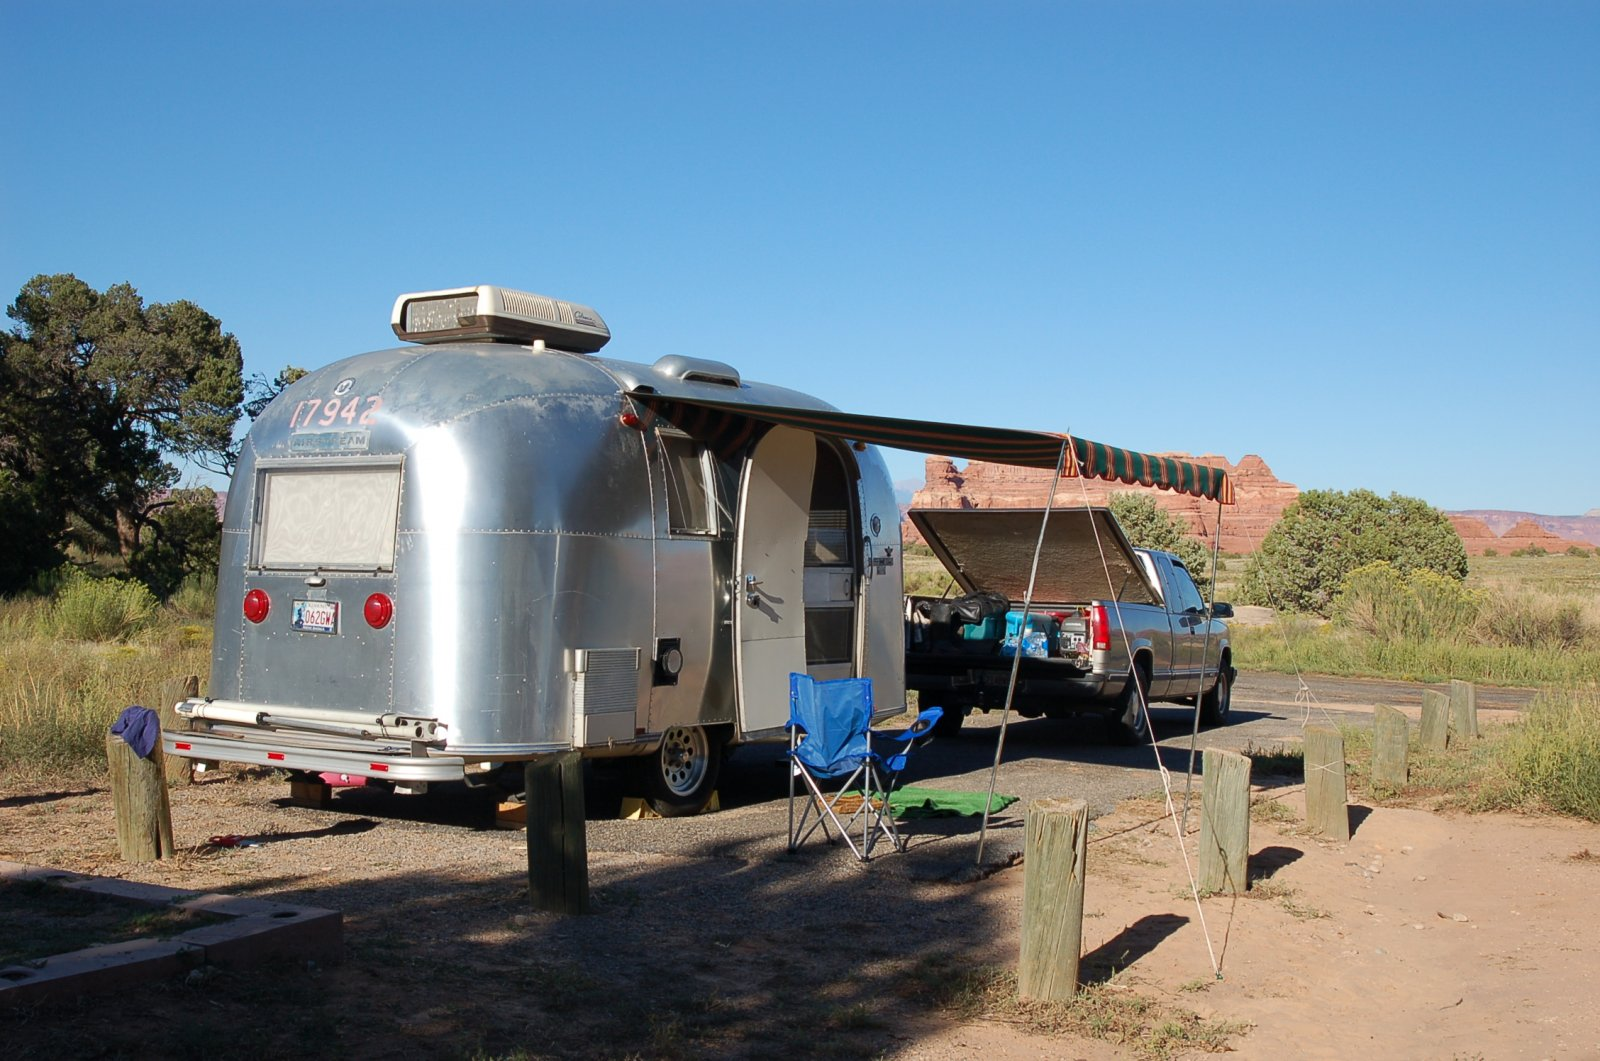 Click image for larger version  Name:canyonlands 054.jpg Views:113 Size:280.9 KB ID:157059